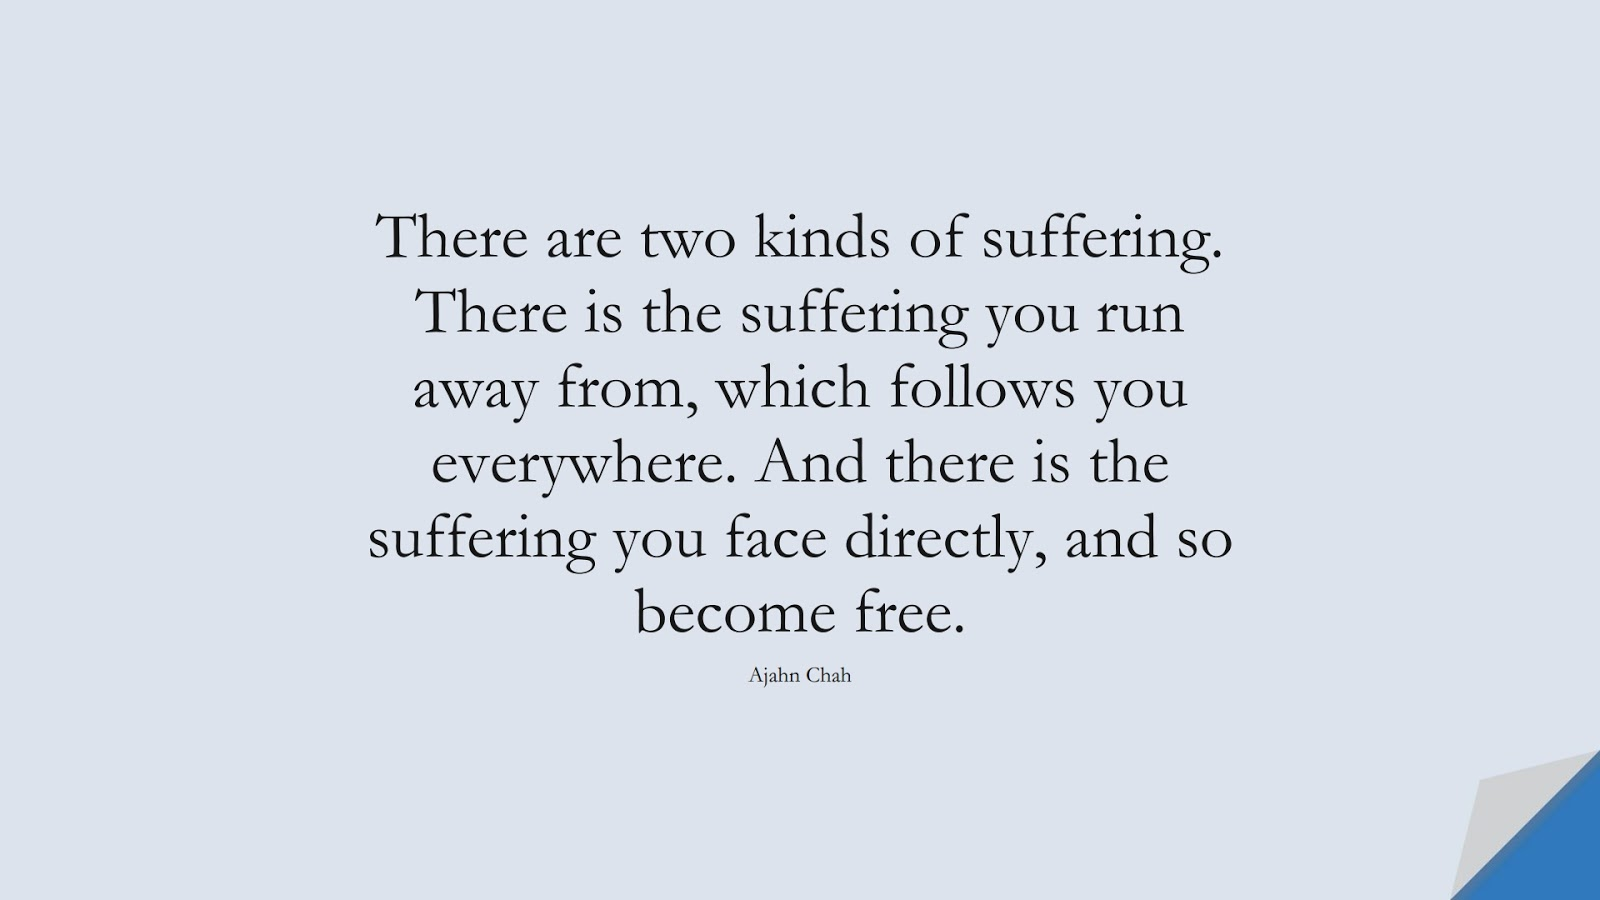 There are two kinds of suffering. There is the suffering you run away from, which follows you everywhere. And there is the suffering you face directly, and so become free. (Ajahn Chah);  #DepressionQuotes